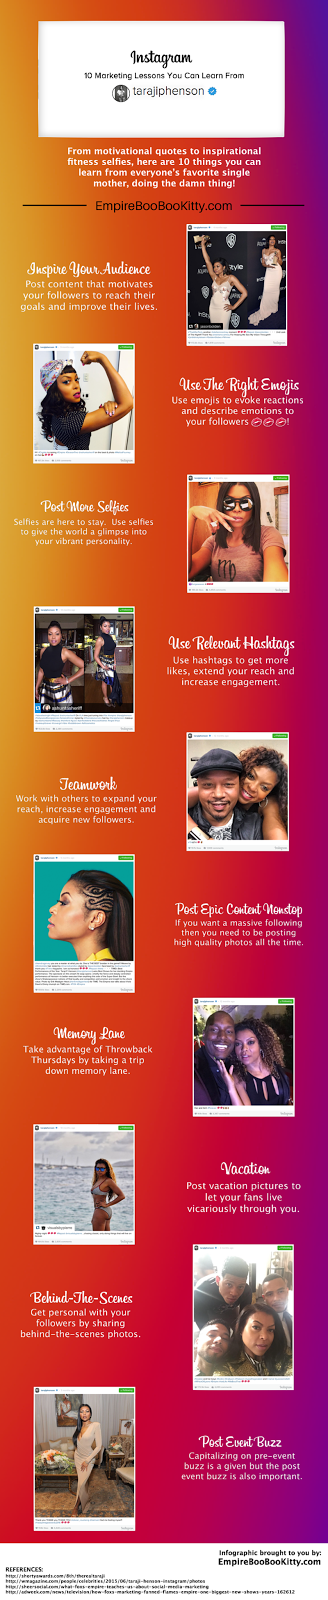 Taraji P Henson Instagram Marketing Lessons Infographic